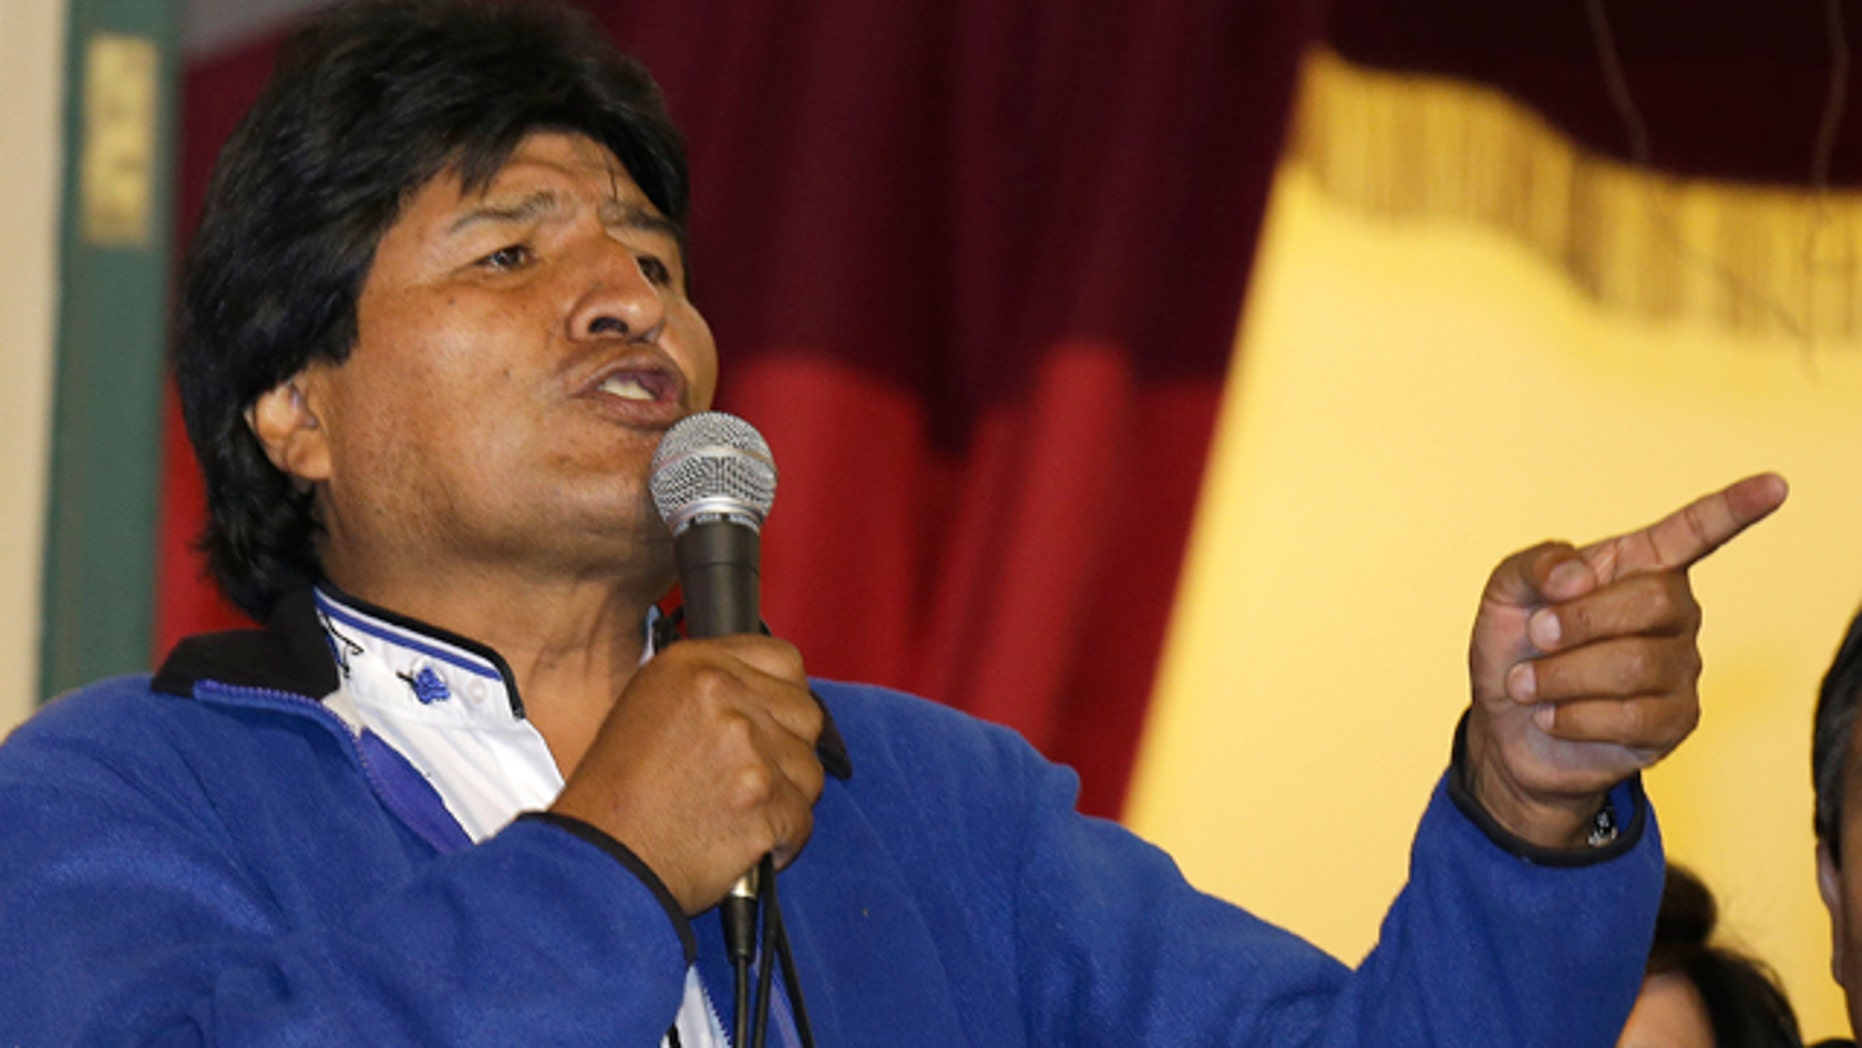 October 12, 2014: Bolivia's President Evo Morales speaks to supporters from the balcony of the presidential palace in La Paz.  (AP Photo/Martin Mejia)